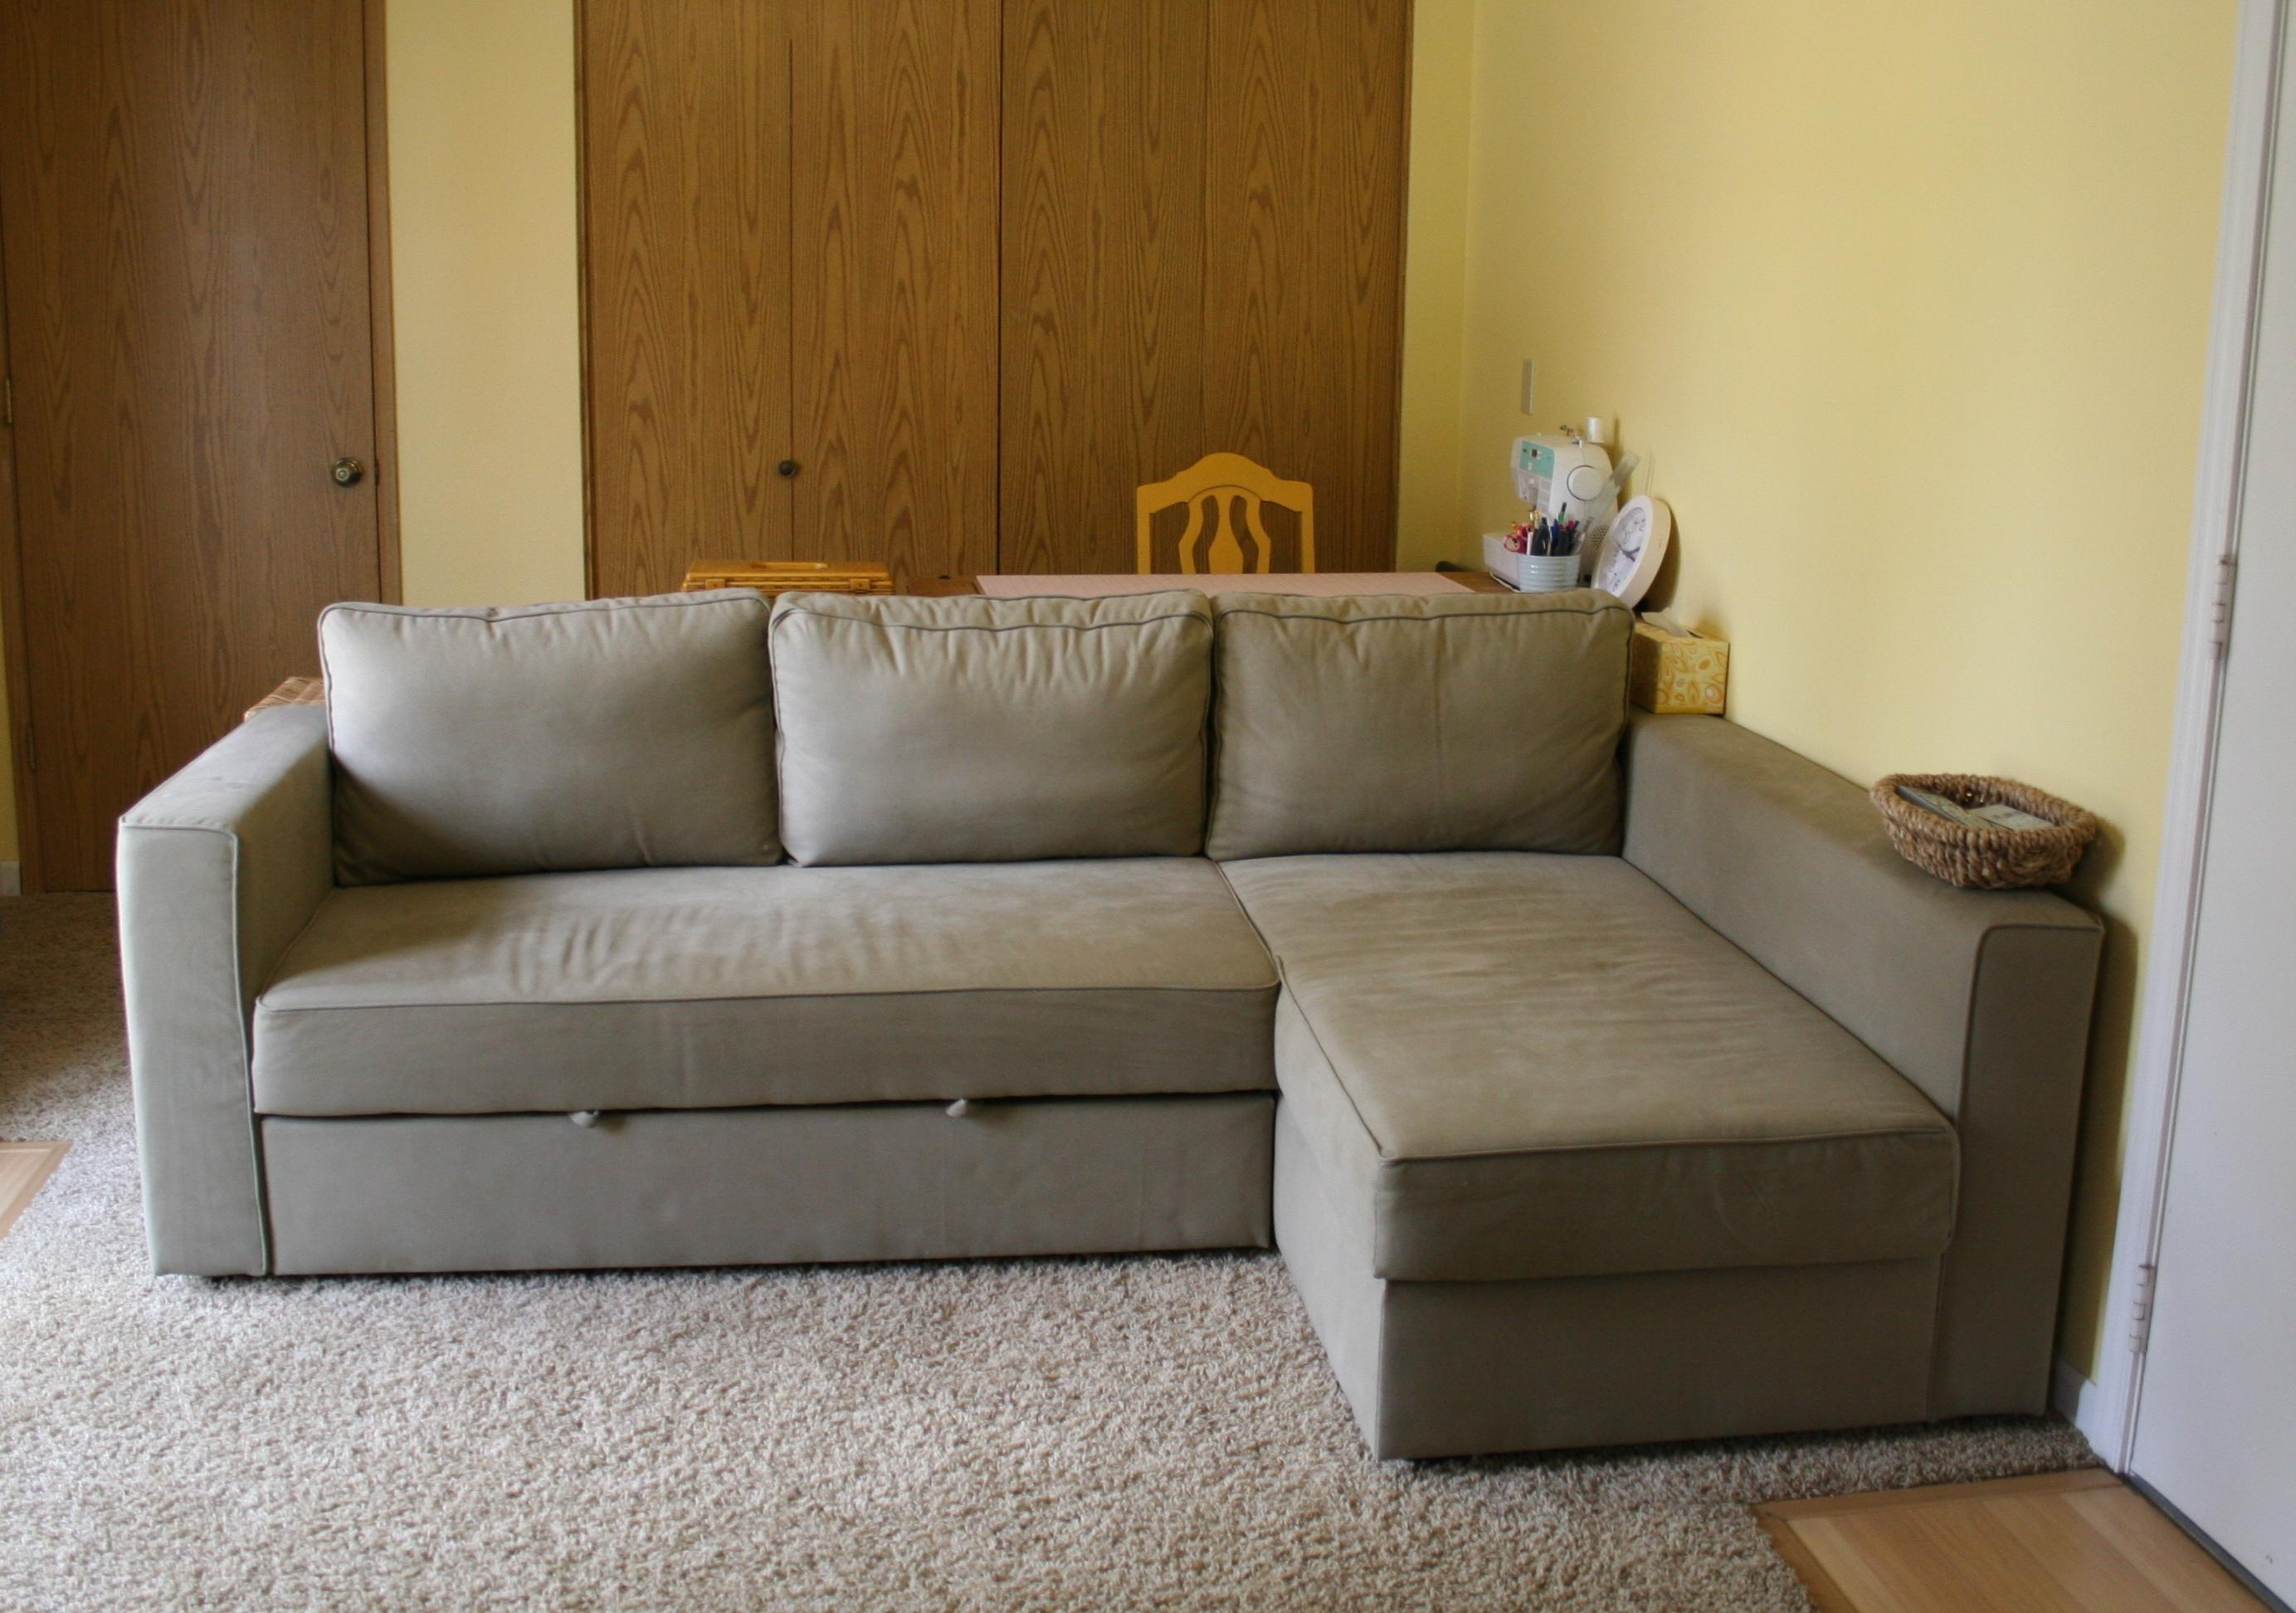 Furniture: Sectional Sleeper Sofa | Small Sectional Couch Within Sleeper Sofa Sectional Ikea (Image 10 of 20)